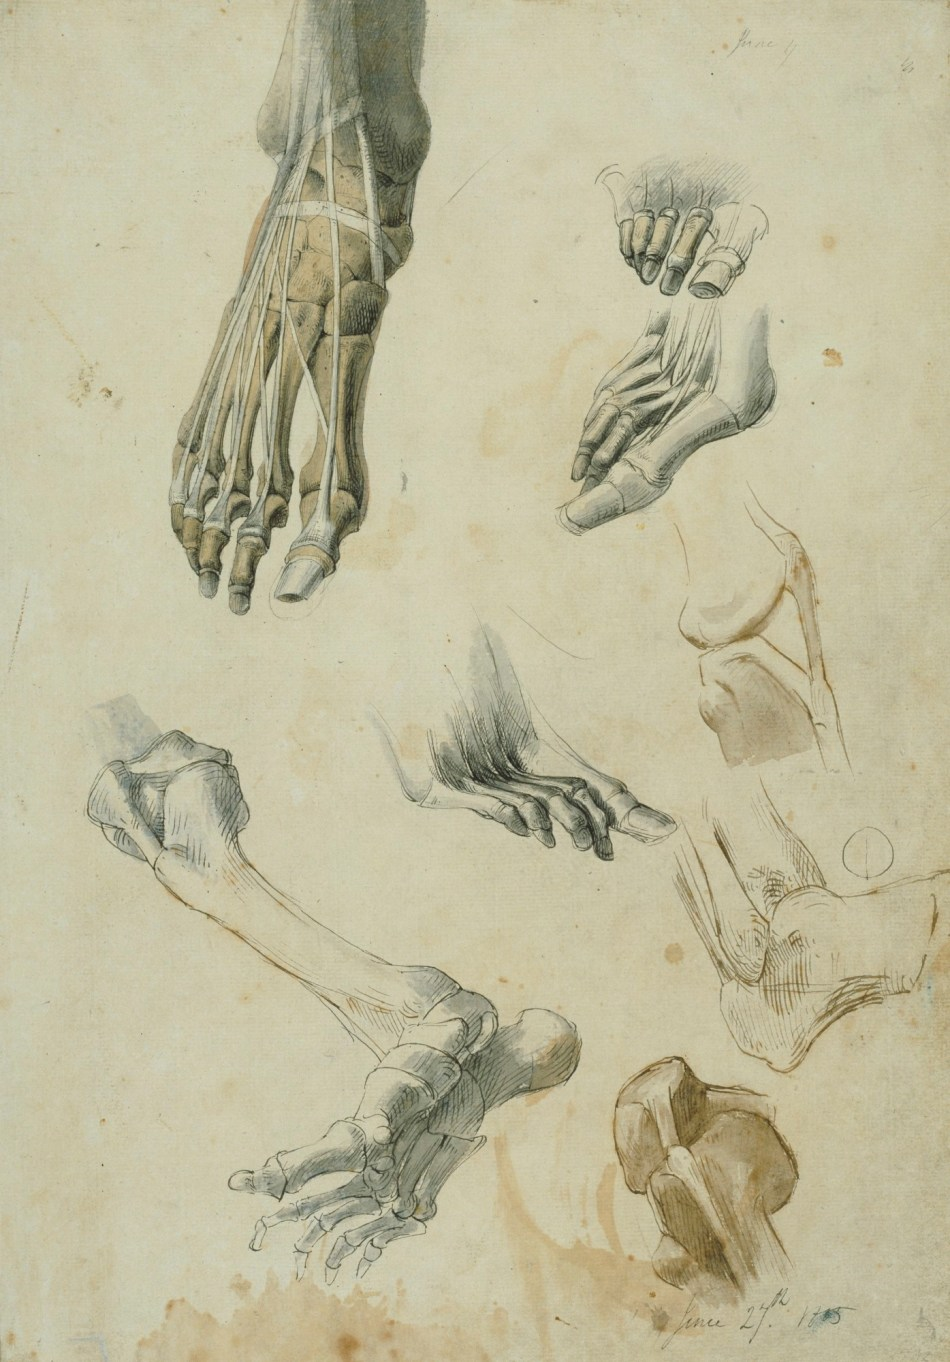 The RA Collection in 250 objects: Anatomy | Blog | Royal Academy of Arts